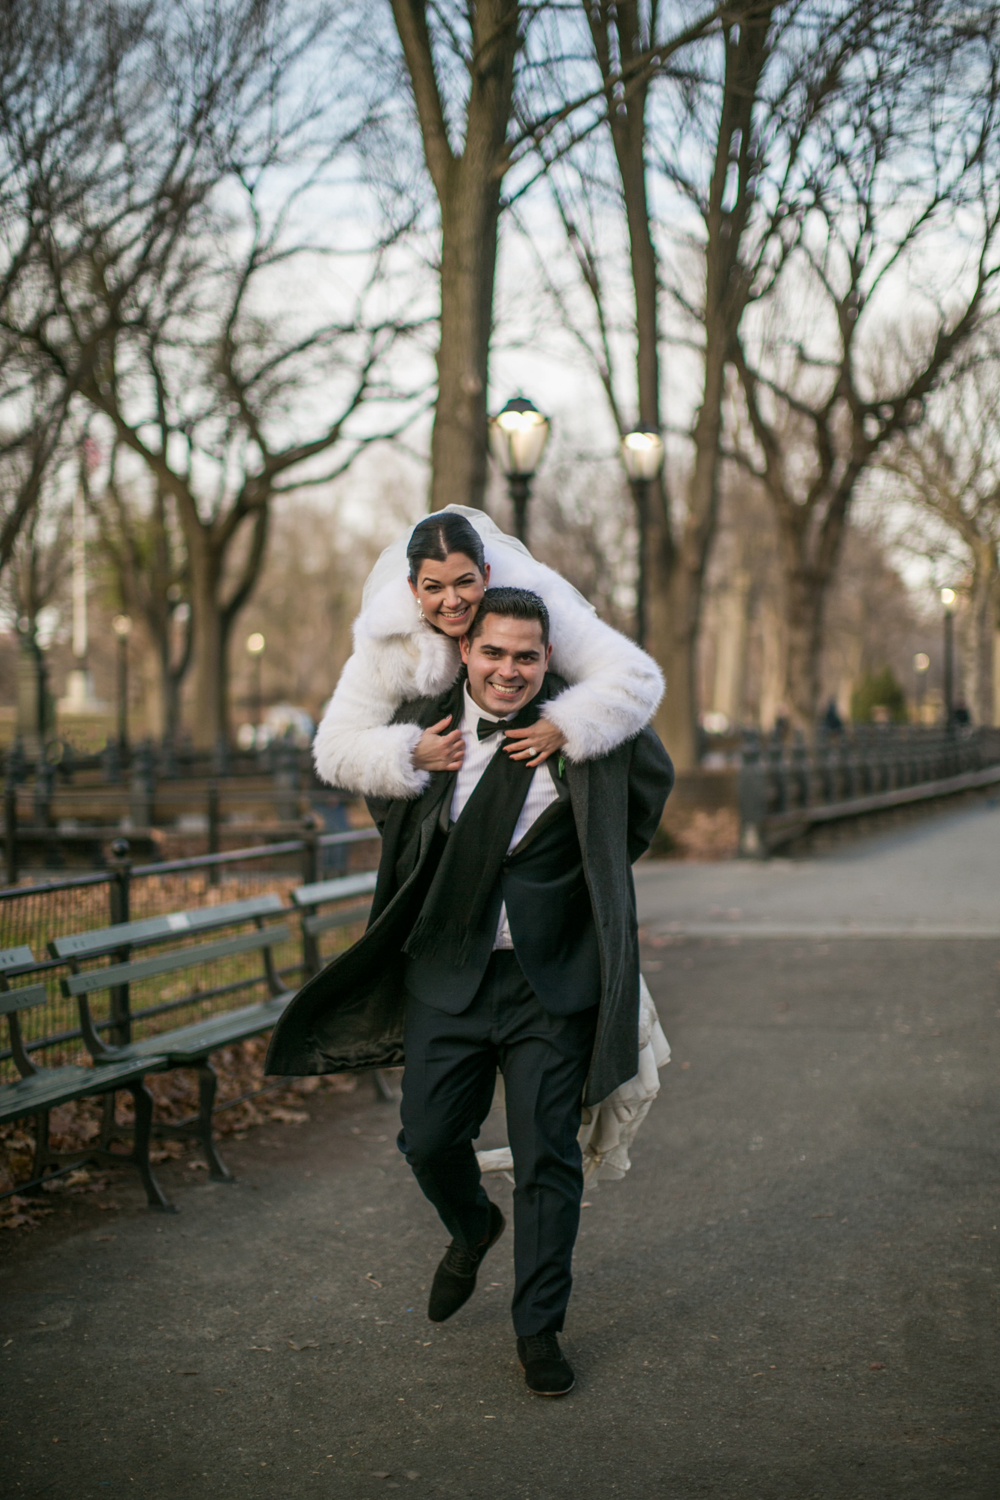 Groom gives bride a piggy back ride in NYC